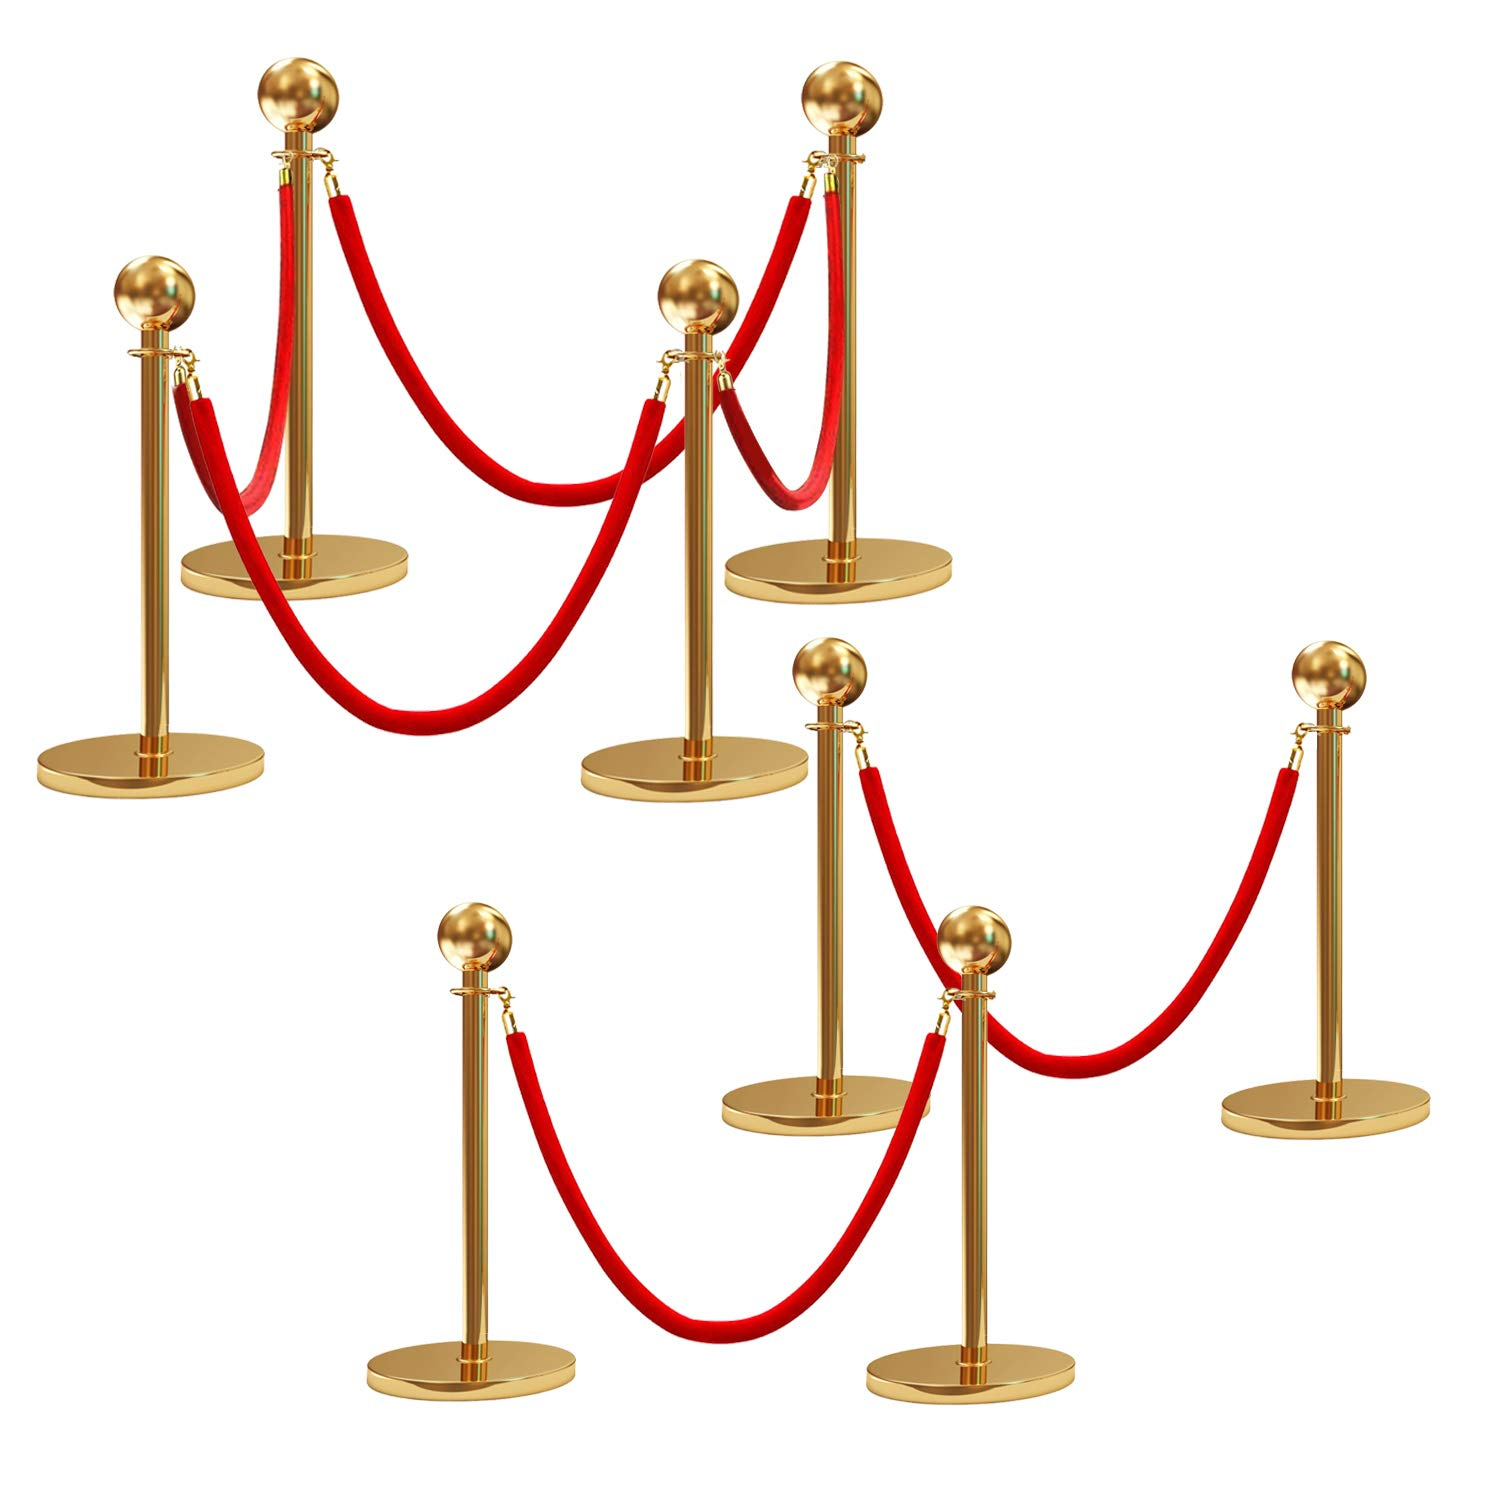 2 Pcs Barrier Ropes with Gold Plated Stainless Steel Snap Hooks 4.9ft Red Flannel Twisted Post Rope for Queue Divider Crowd Control of Hotel Celebration